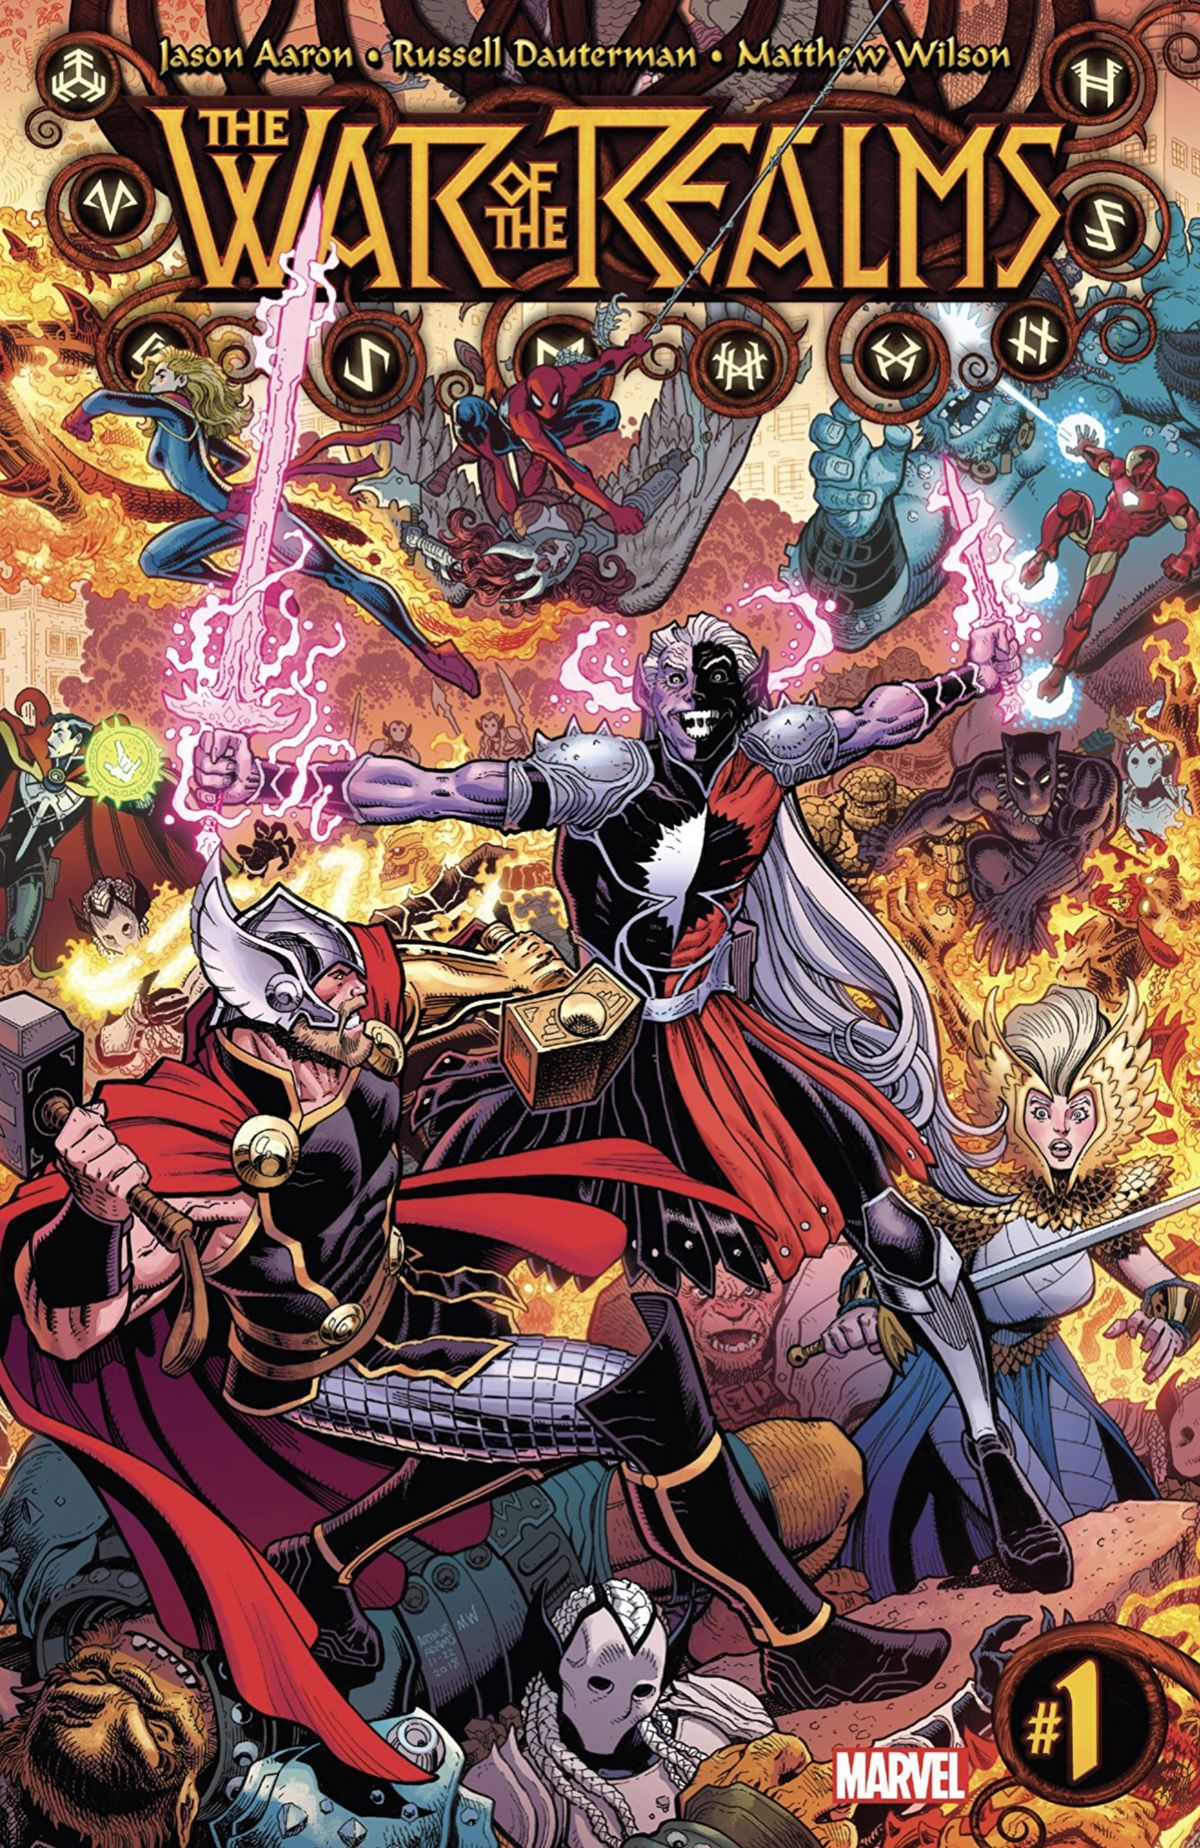 Malekith and Thor clash as their armies and allies battle behind them, on the cover of The War of the Realms #1, Marvel Comics (2019).